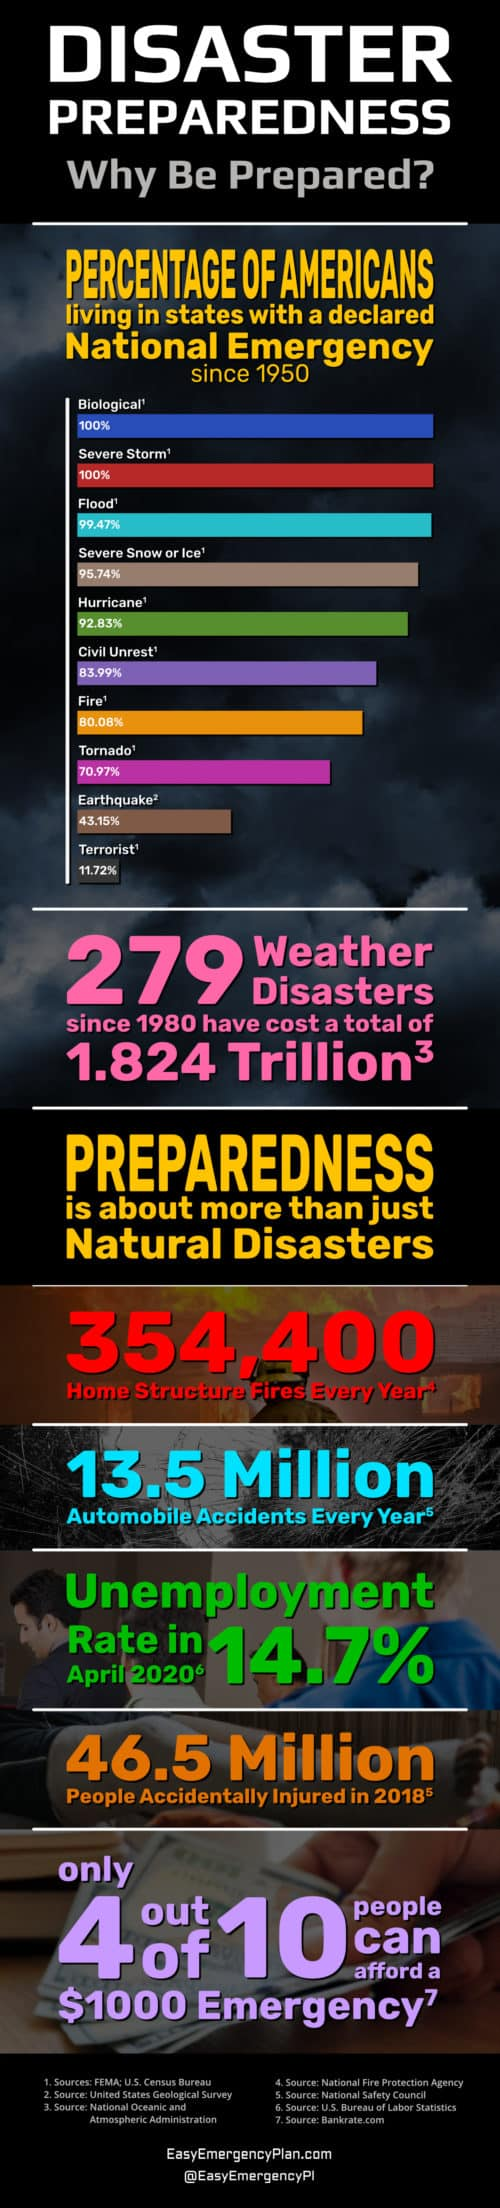 Infographic On Disaster Preparedness With Statistics About National Emergencies, Fires, Accidents, and Financial Emergencies